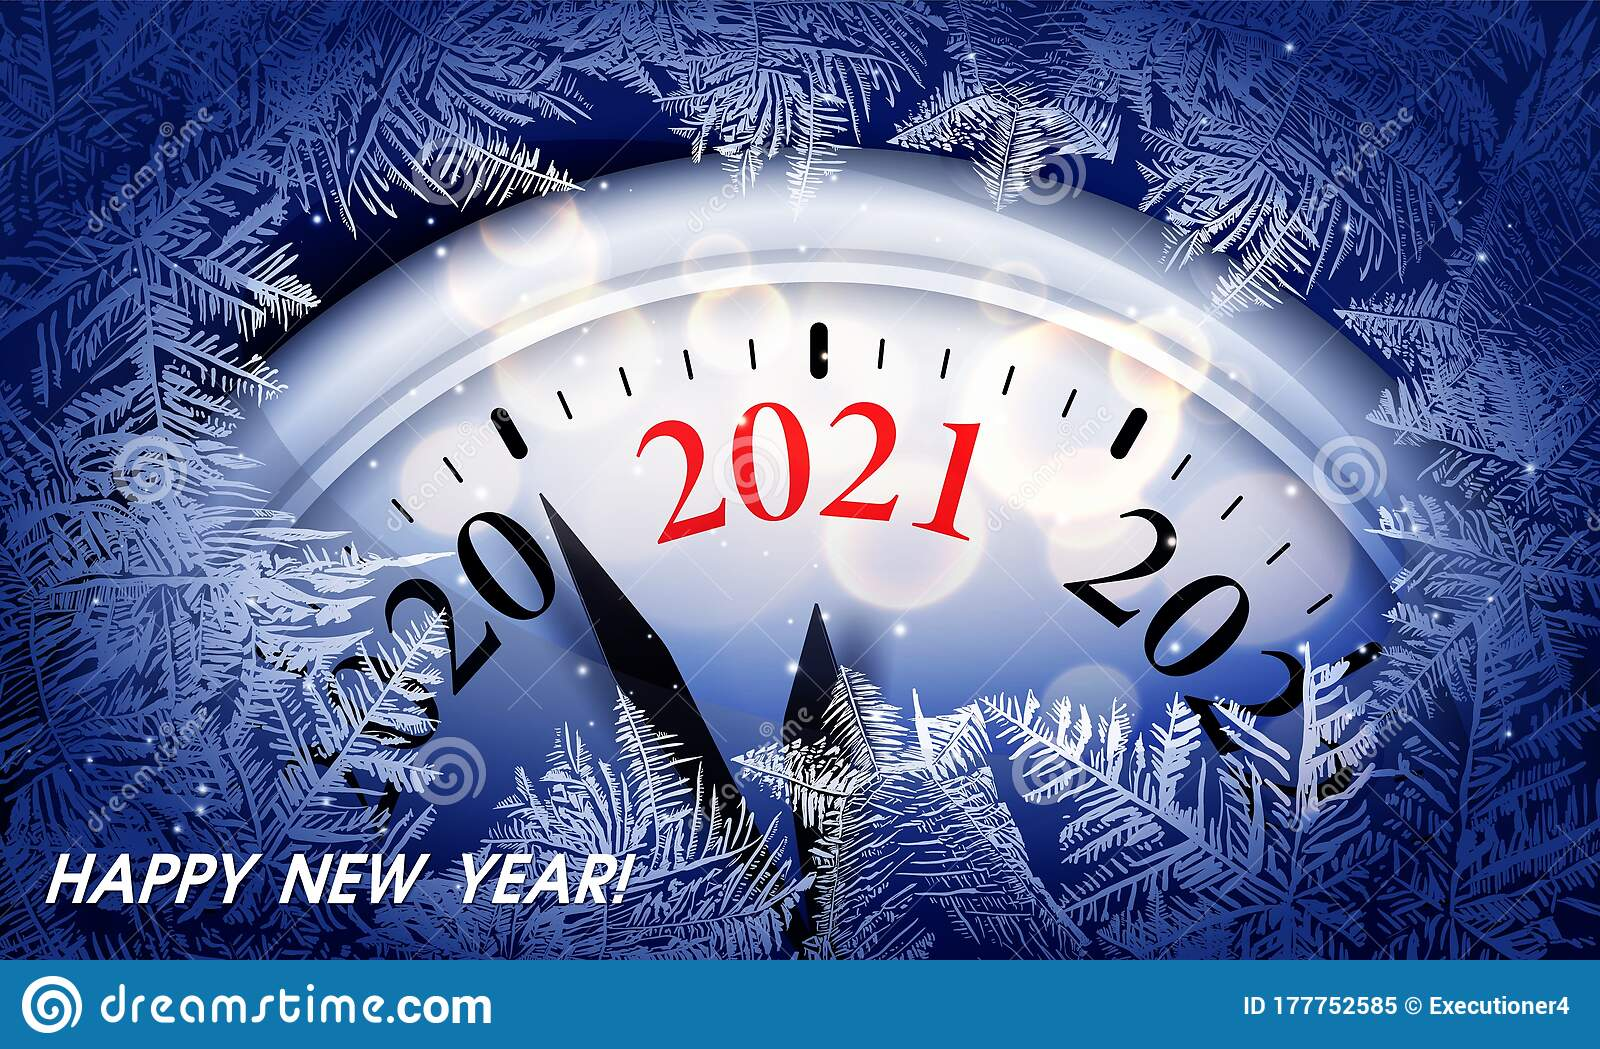 2021 Countdown To Christmas Countdown To Midnight Retro Style Clock Counting Last Moments Before Christmass Or New Year 2021 Vector Illustration Christmas Stock Illustration Illustration Of 2021 Banner 177752585